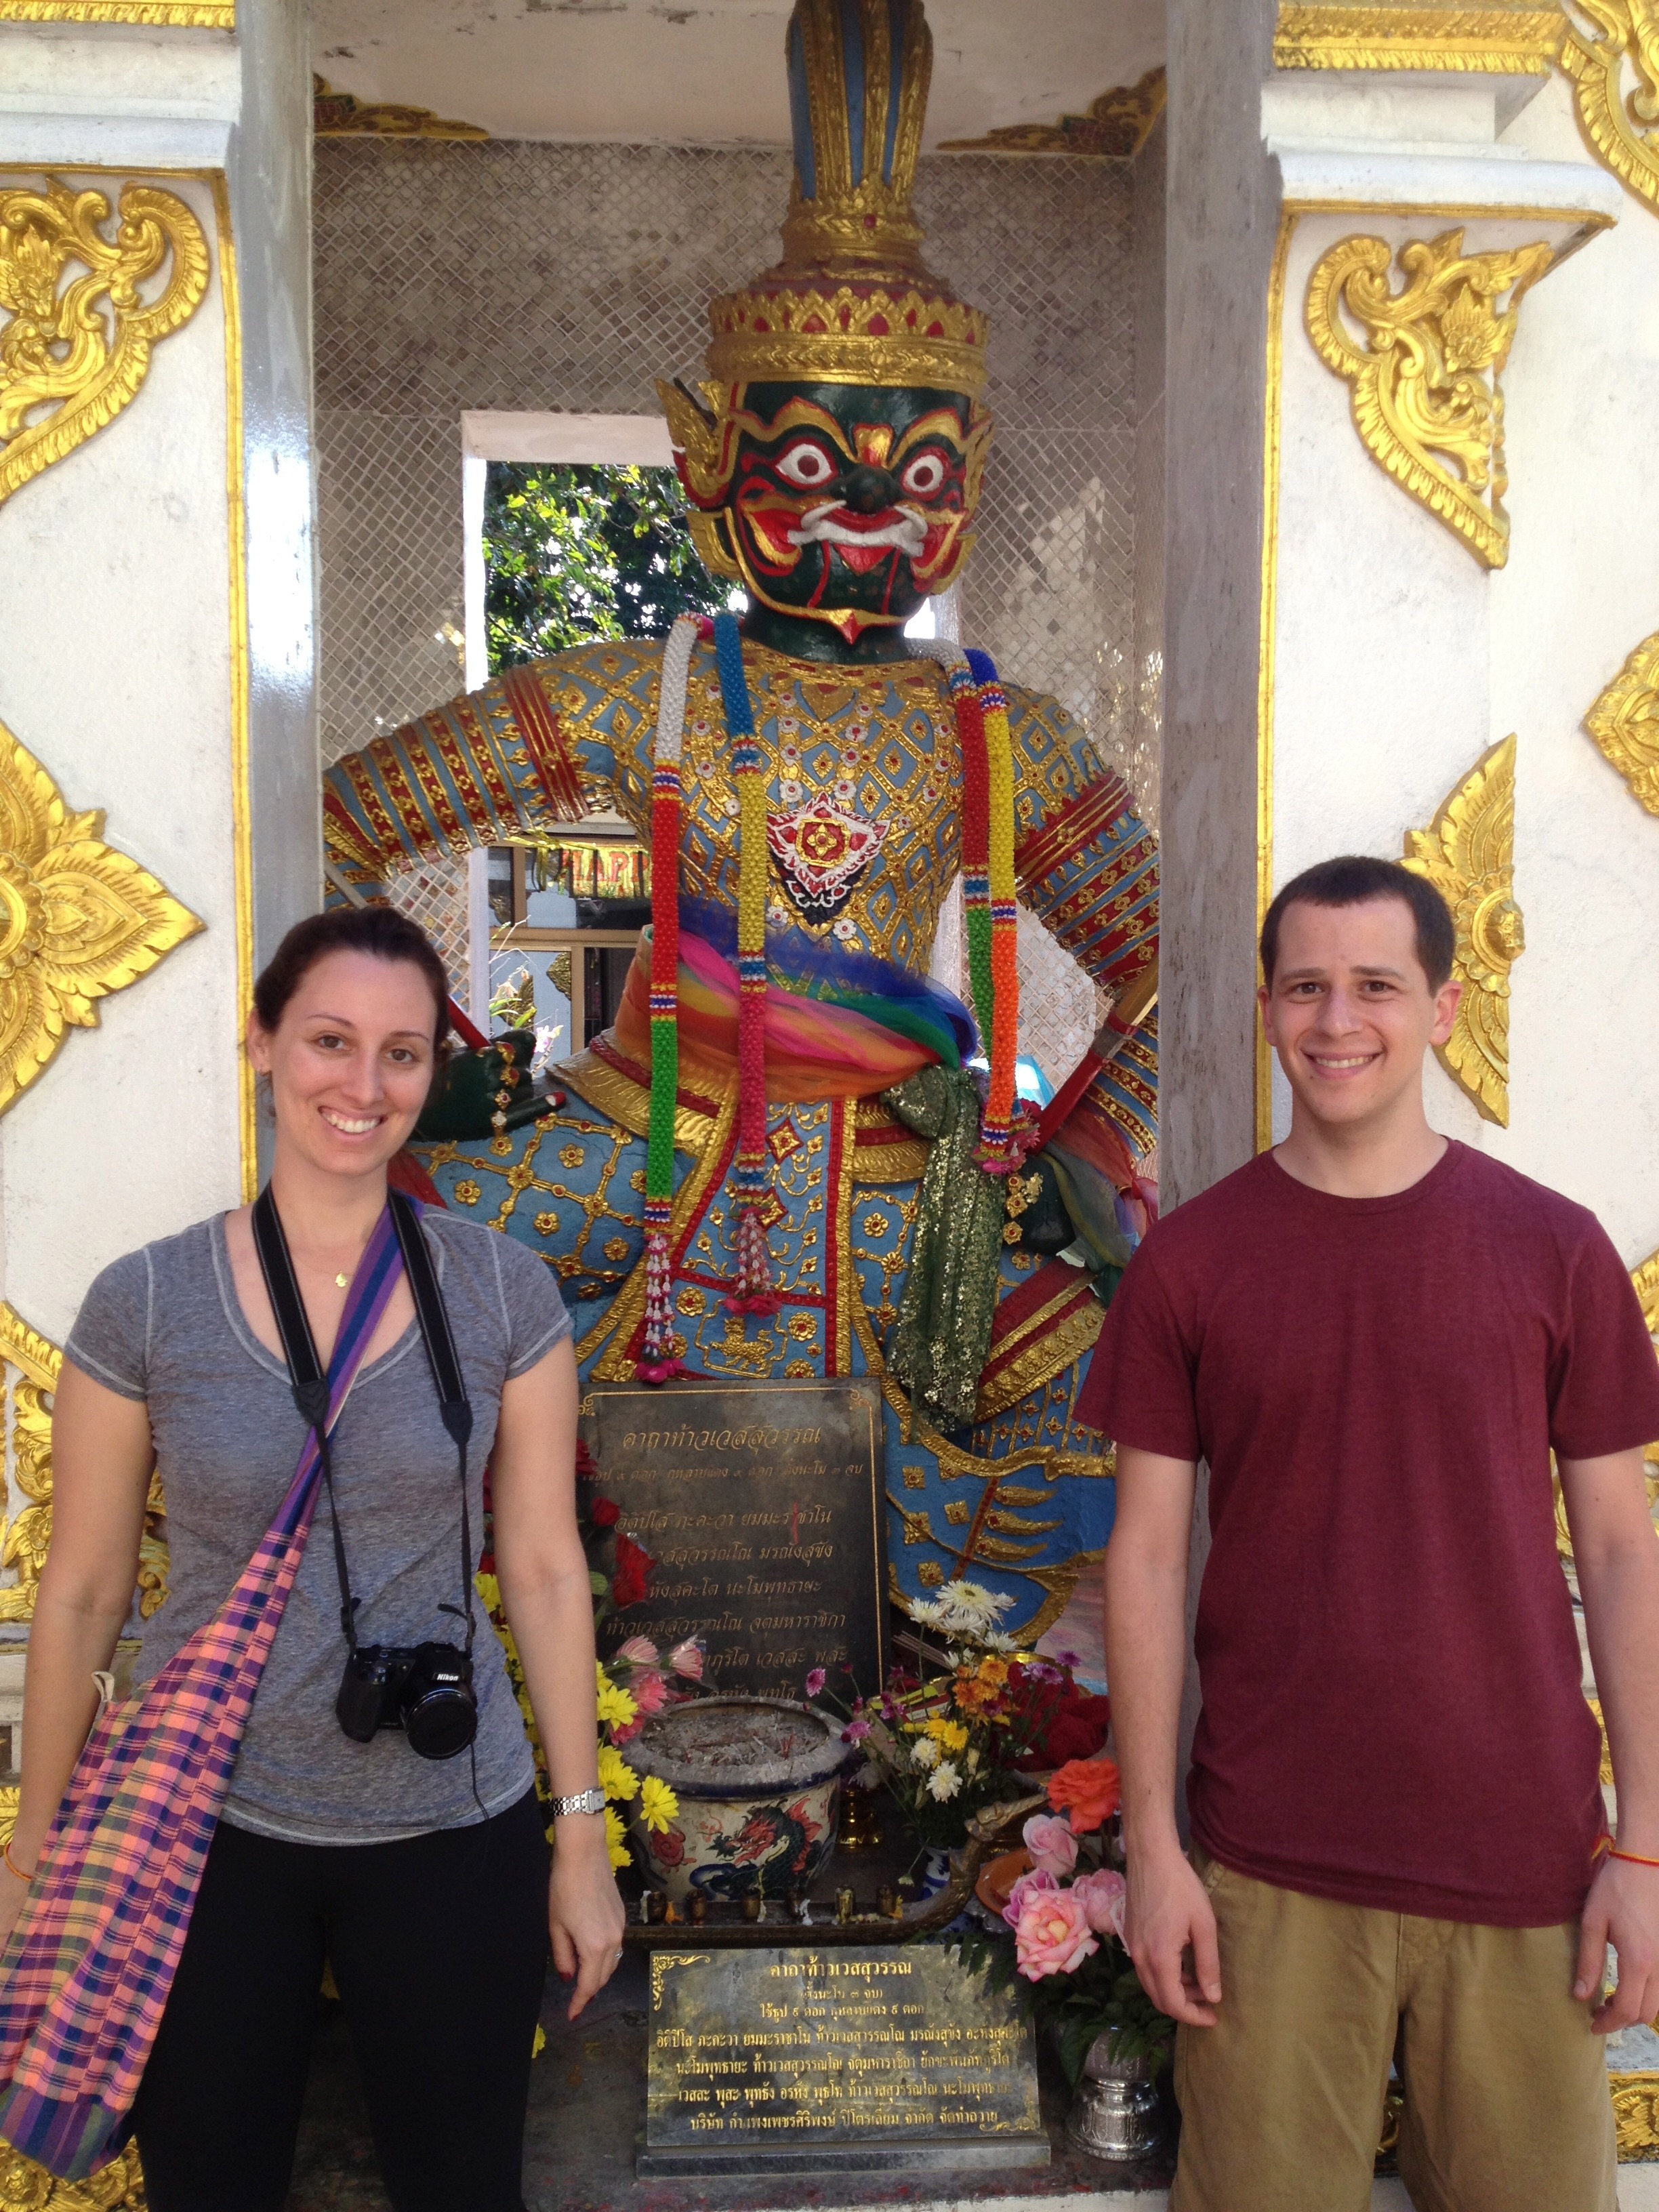 TRAVEL: Thailand, Part 2 - Chiang Mai